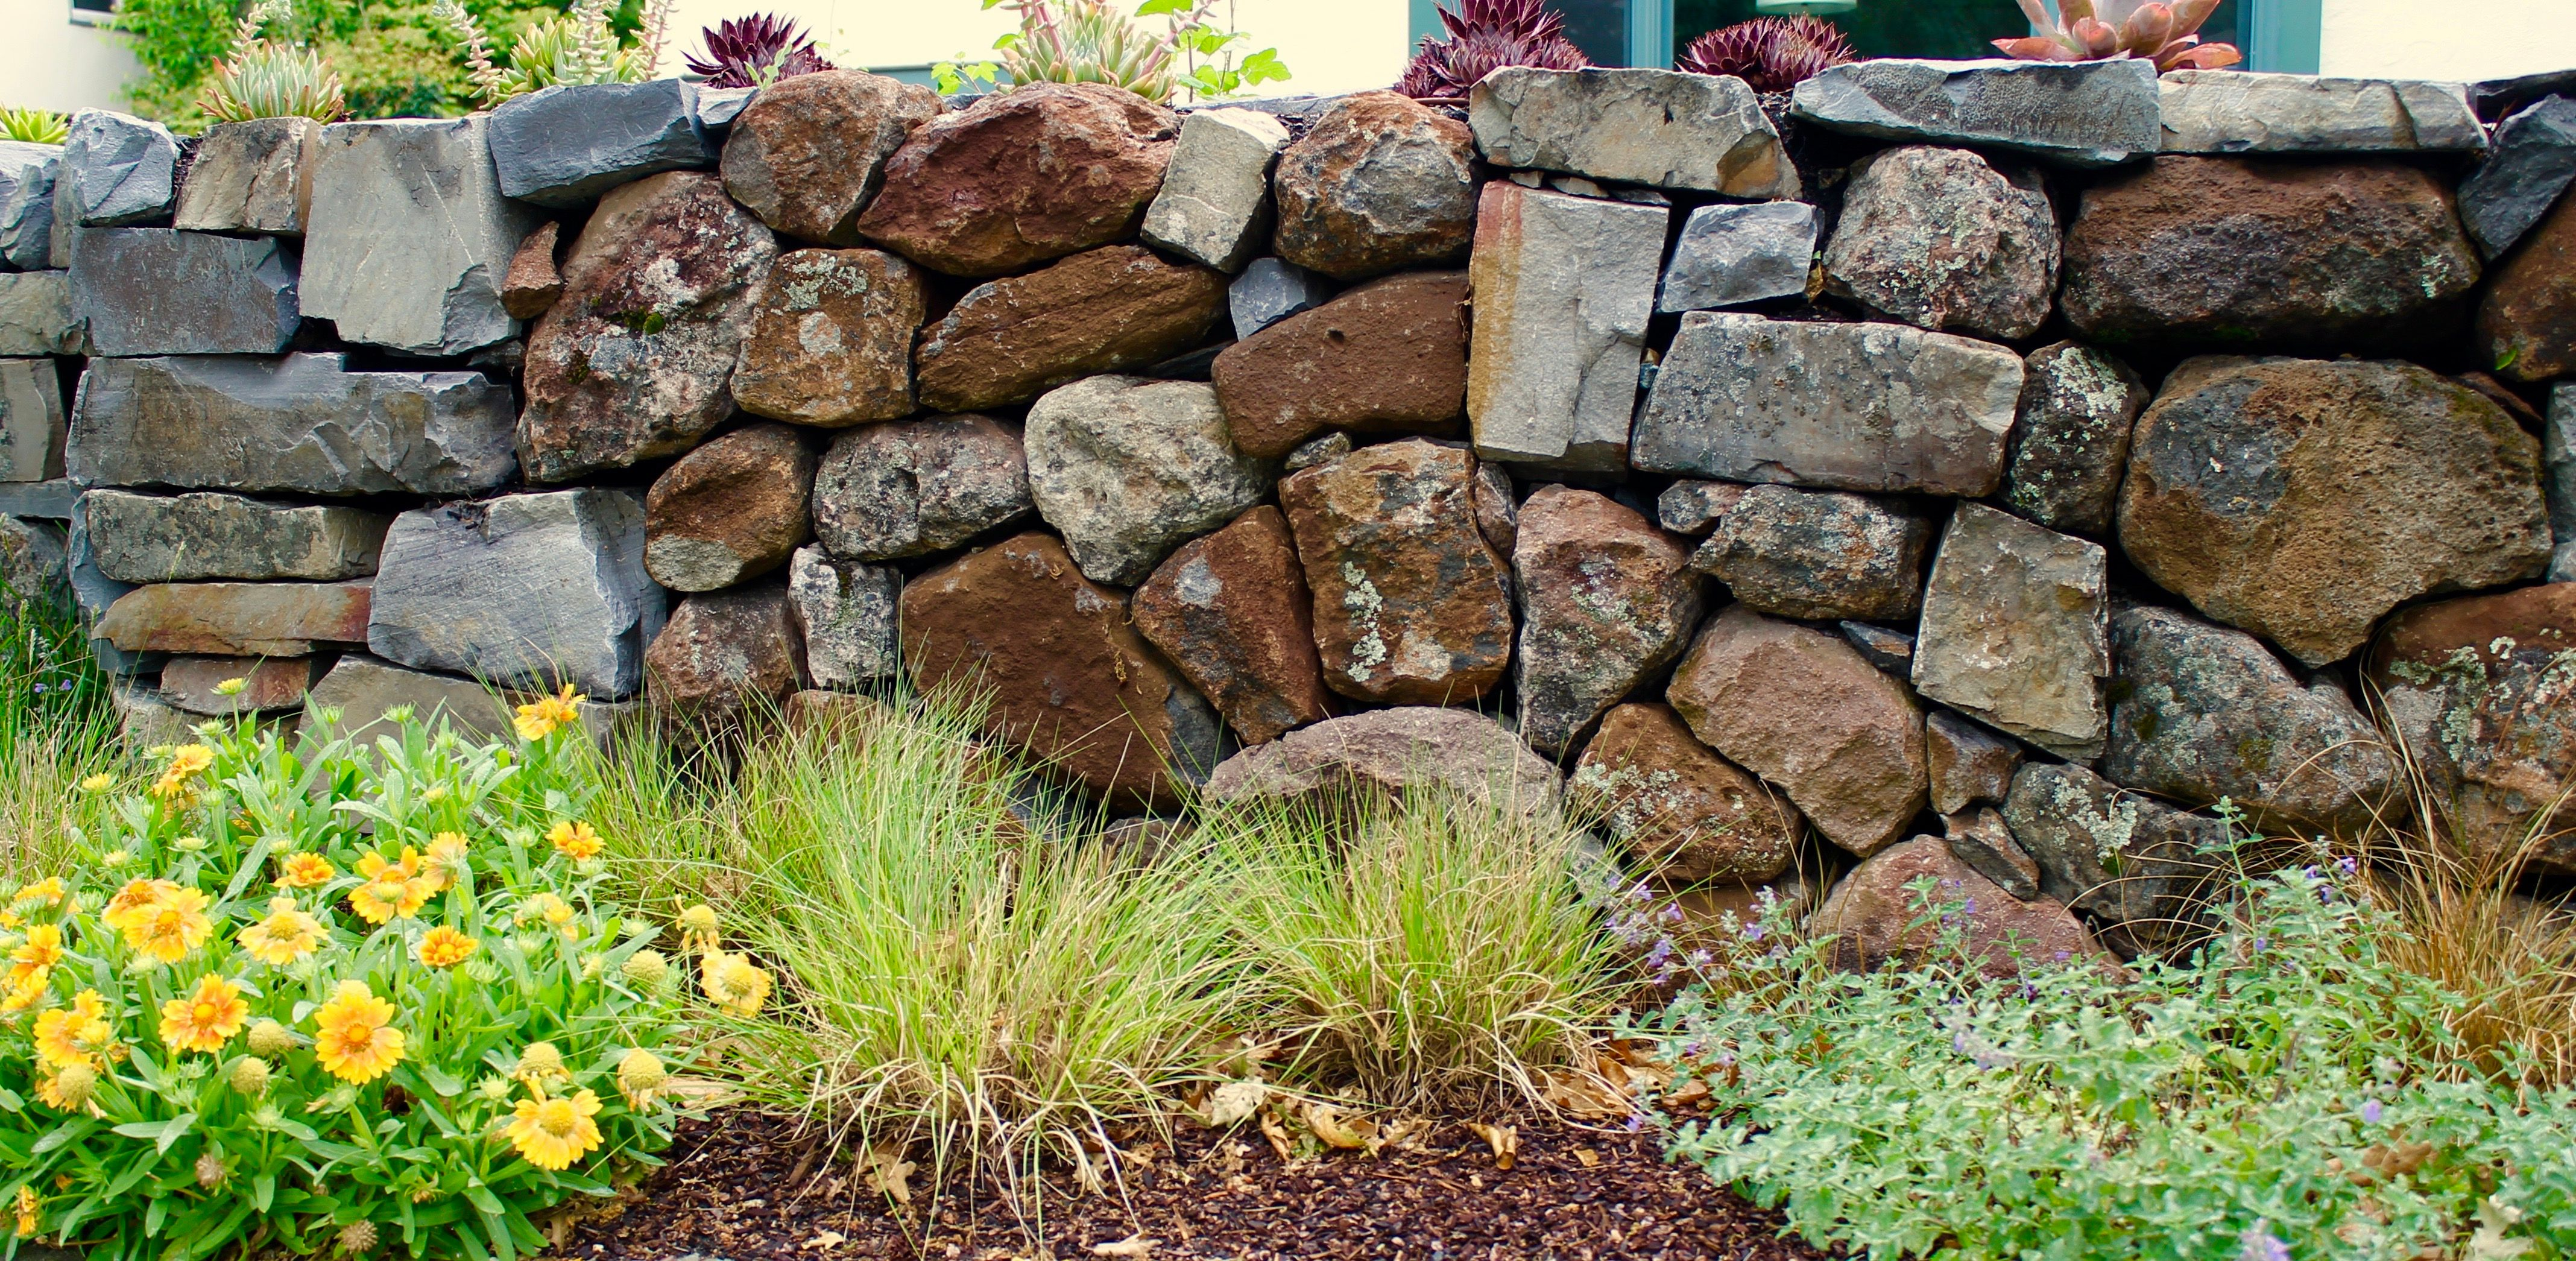 A Dry Laid Stone Wall Constructed Without Mortar Provides